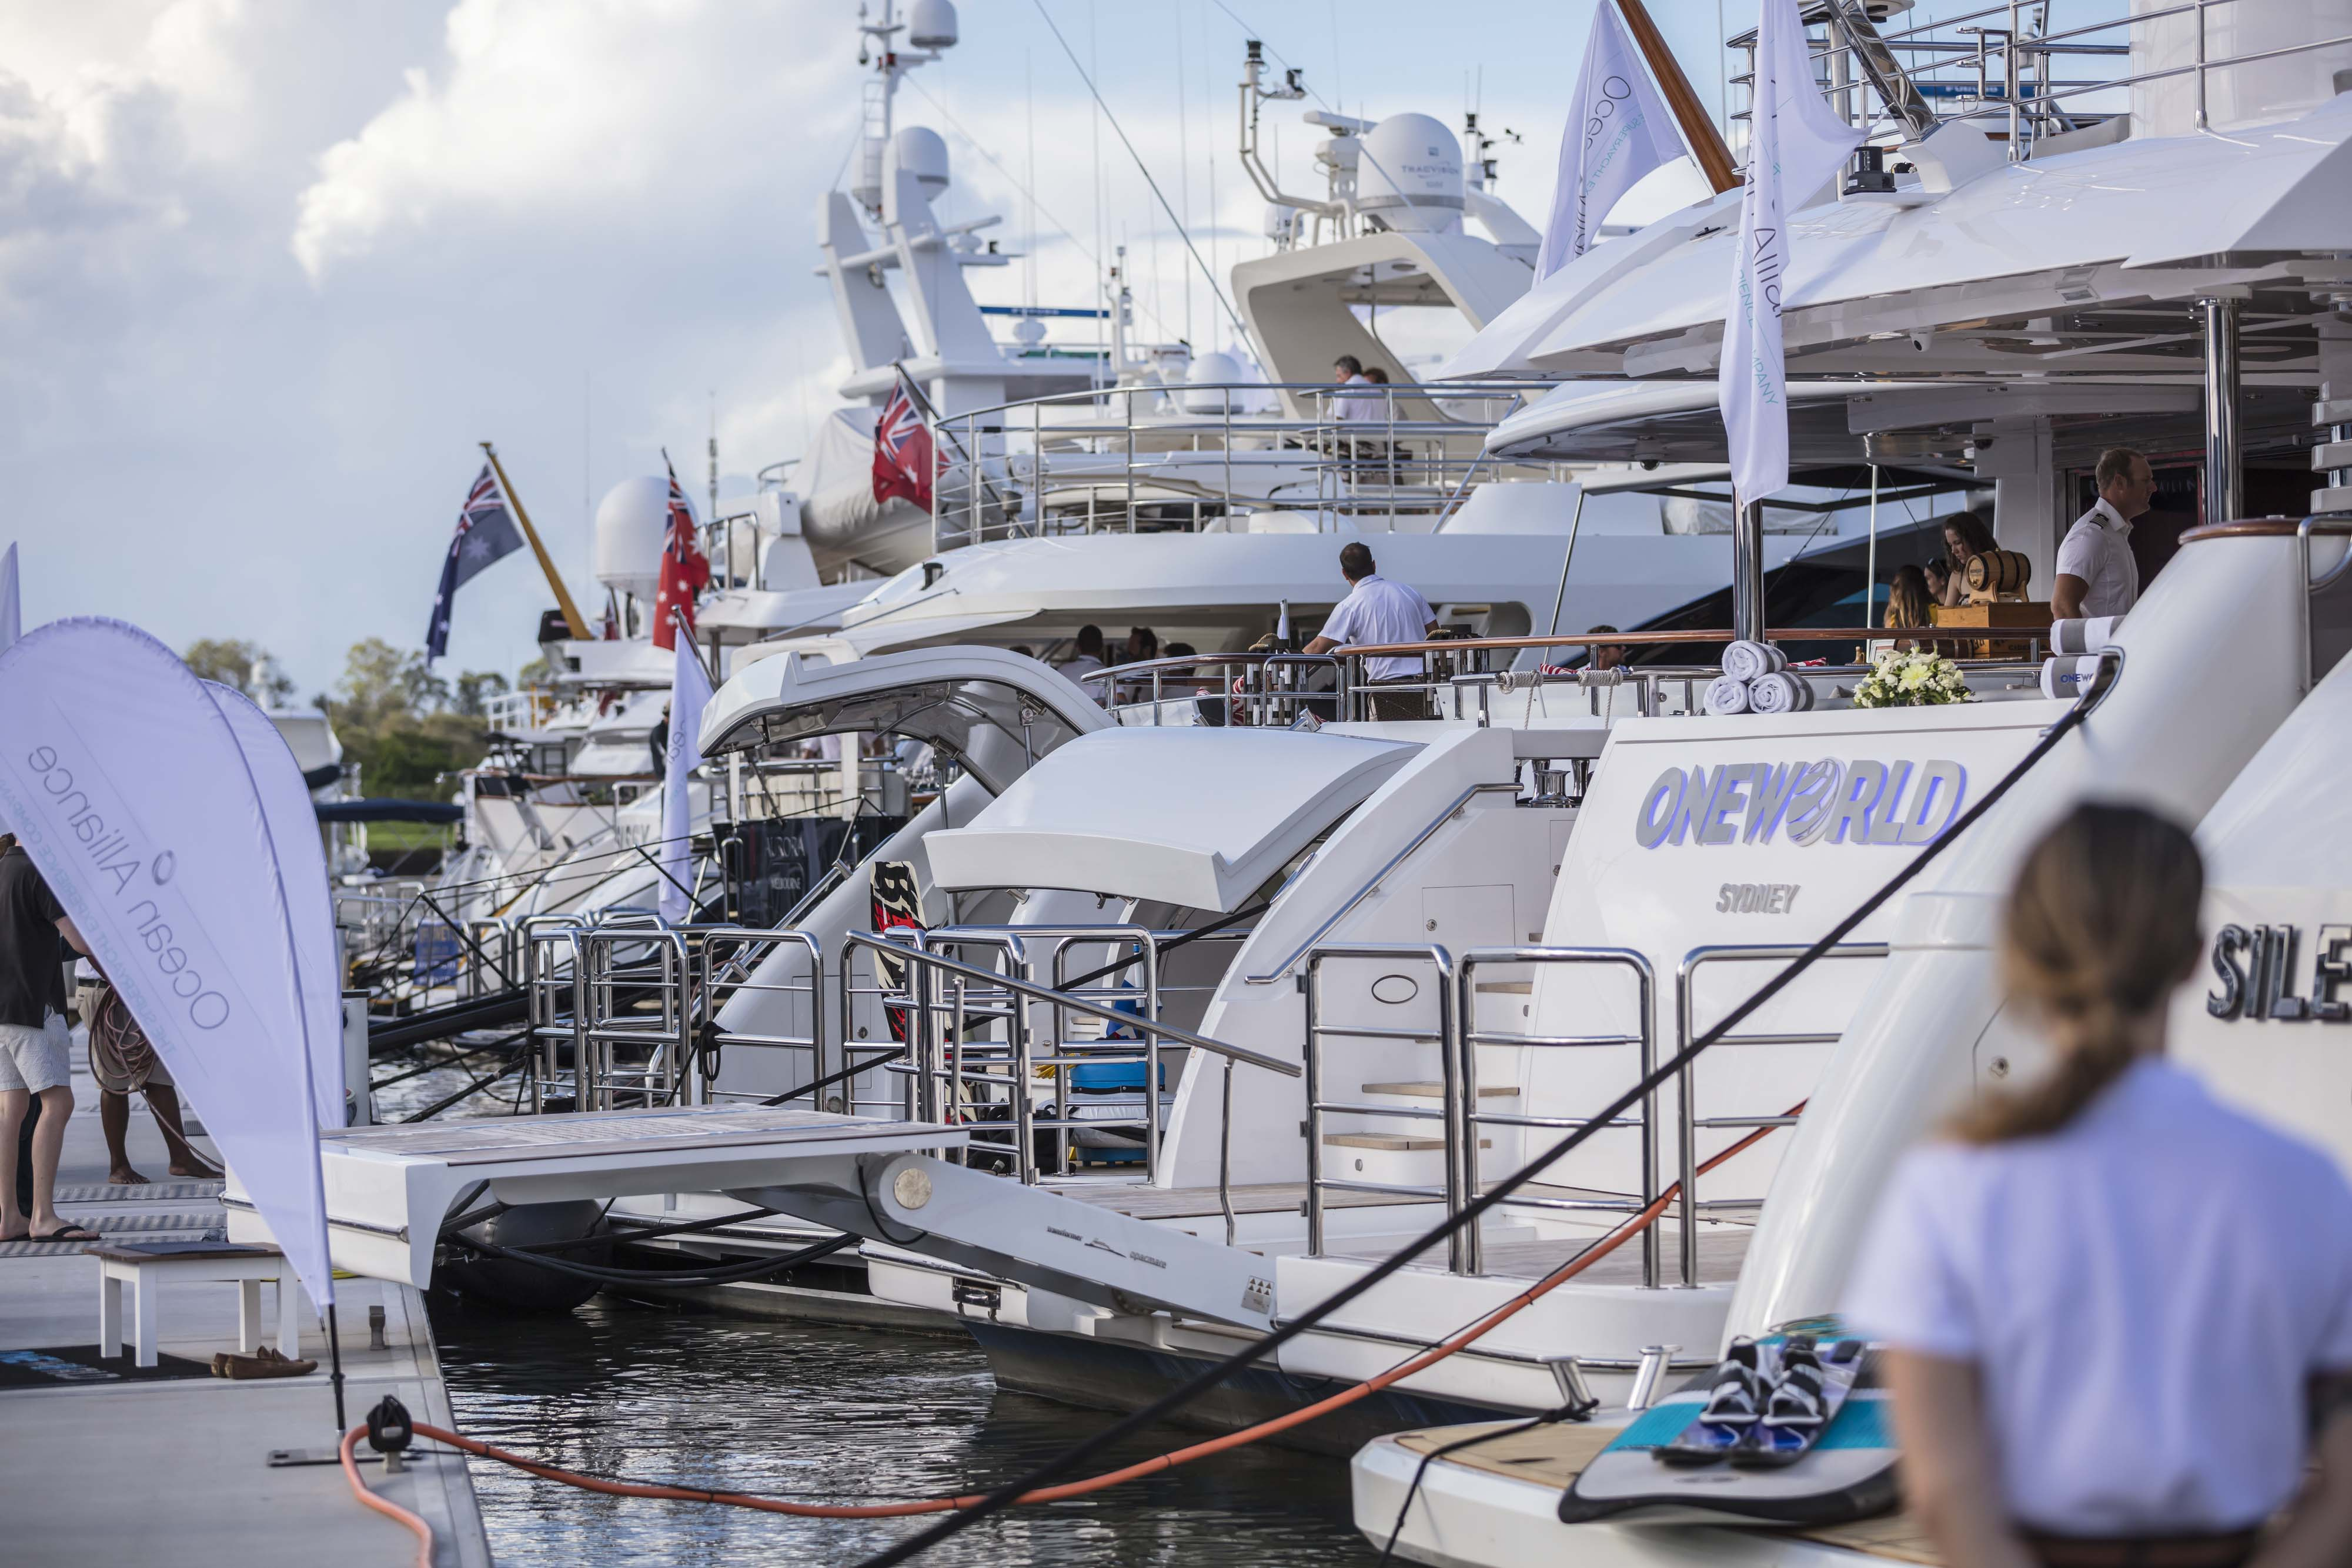 Oneworld makes her world debut at the Australian Superyacht Rendezvous